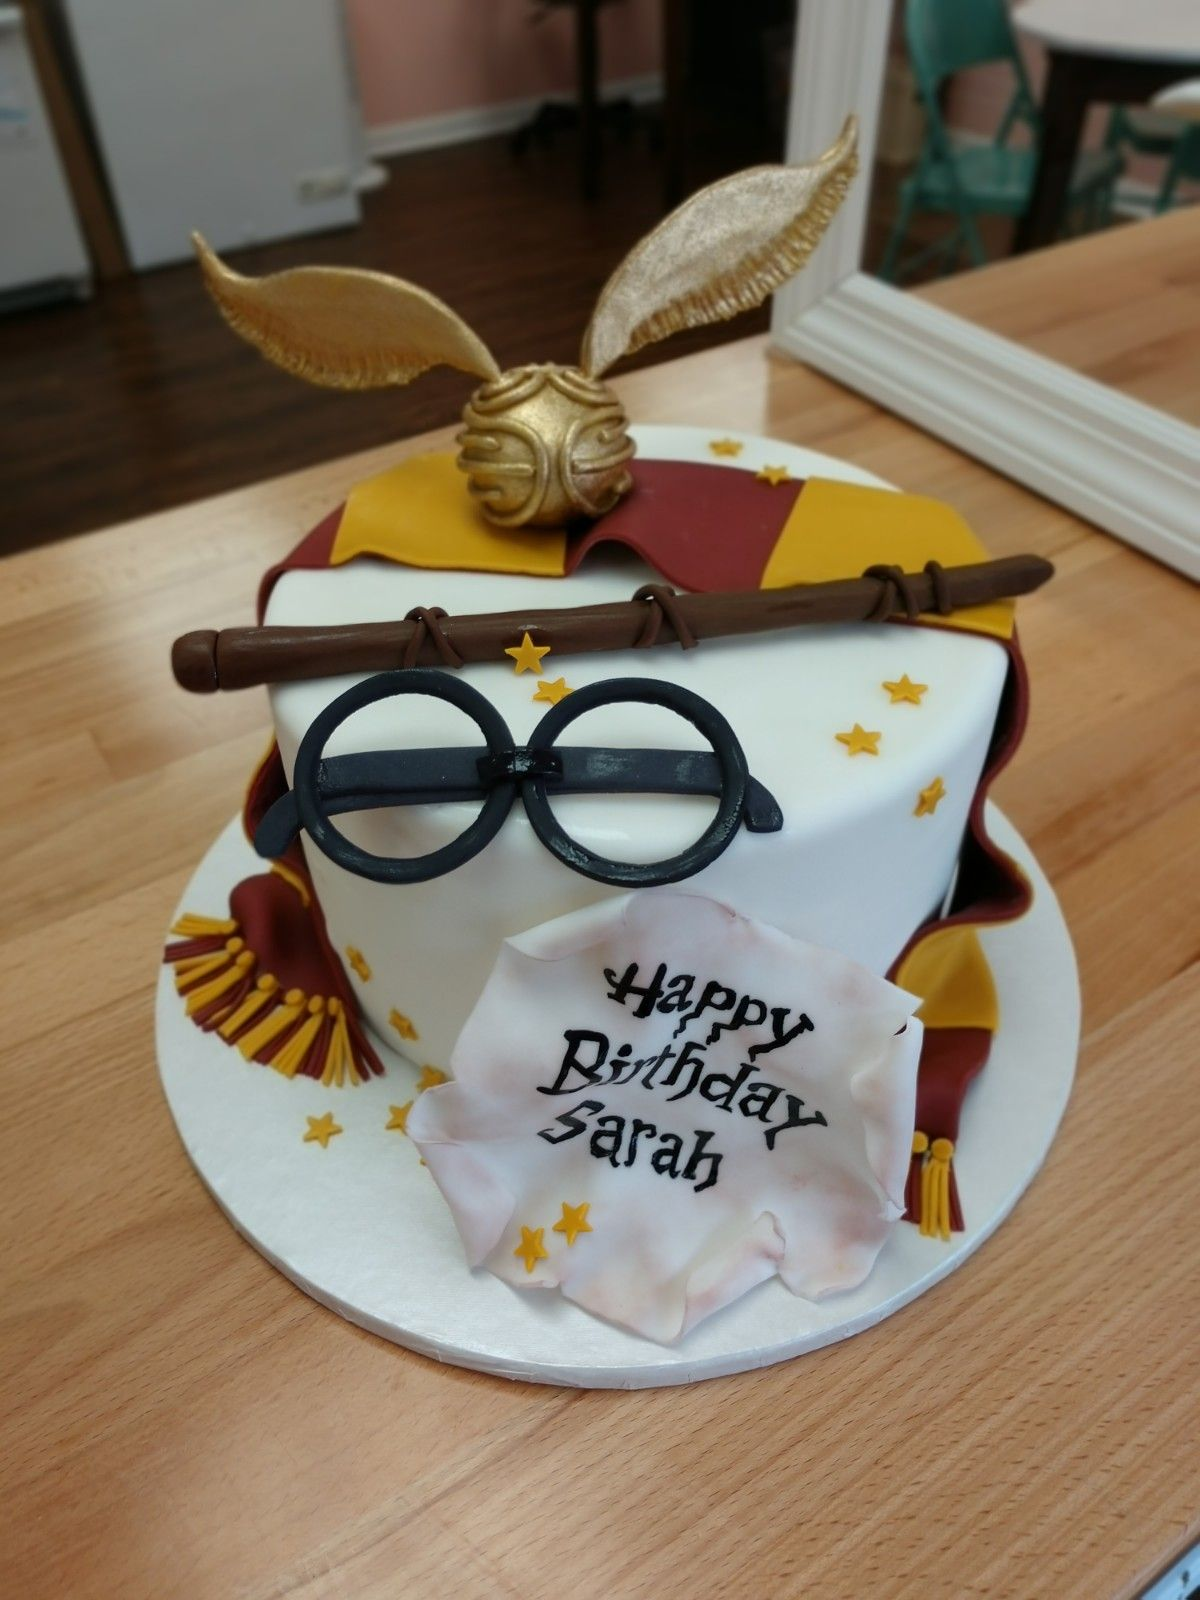 Swell Harry Potter Cake Golden Snitch Birthday Cake With Images Funny Birthday Cards Online Alyptdamsfinfo